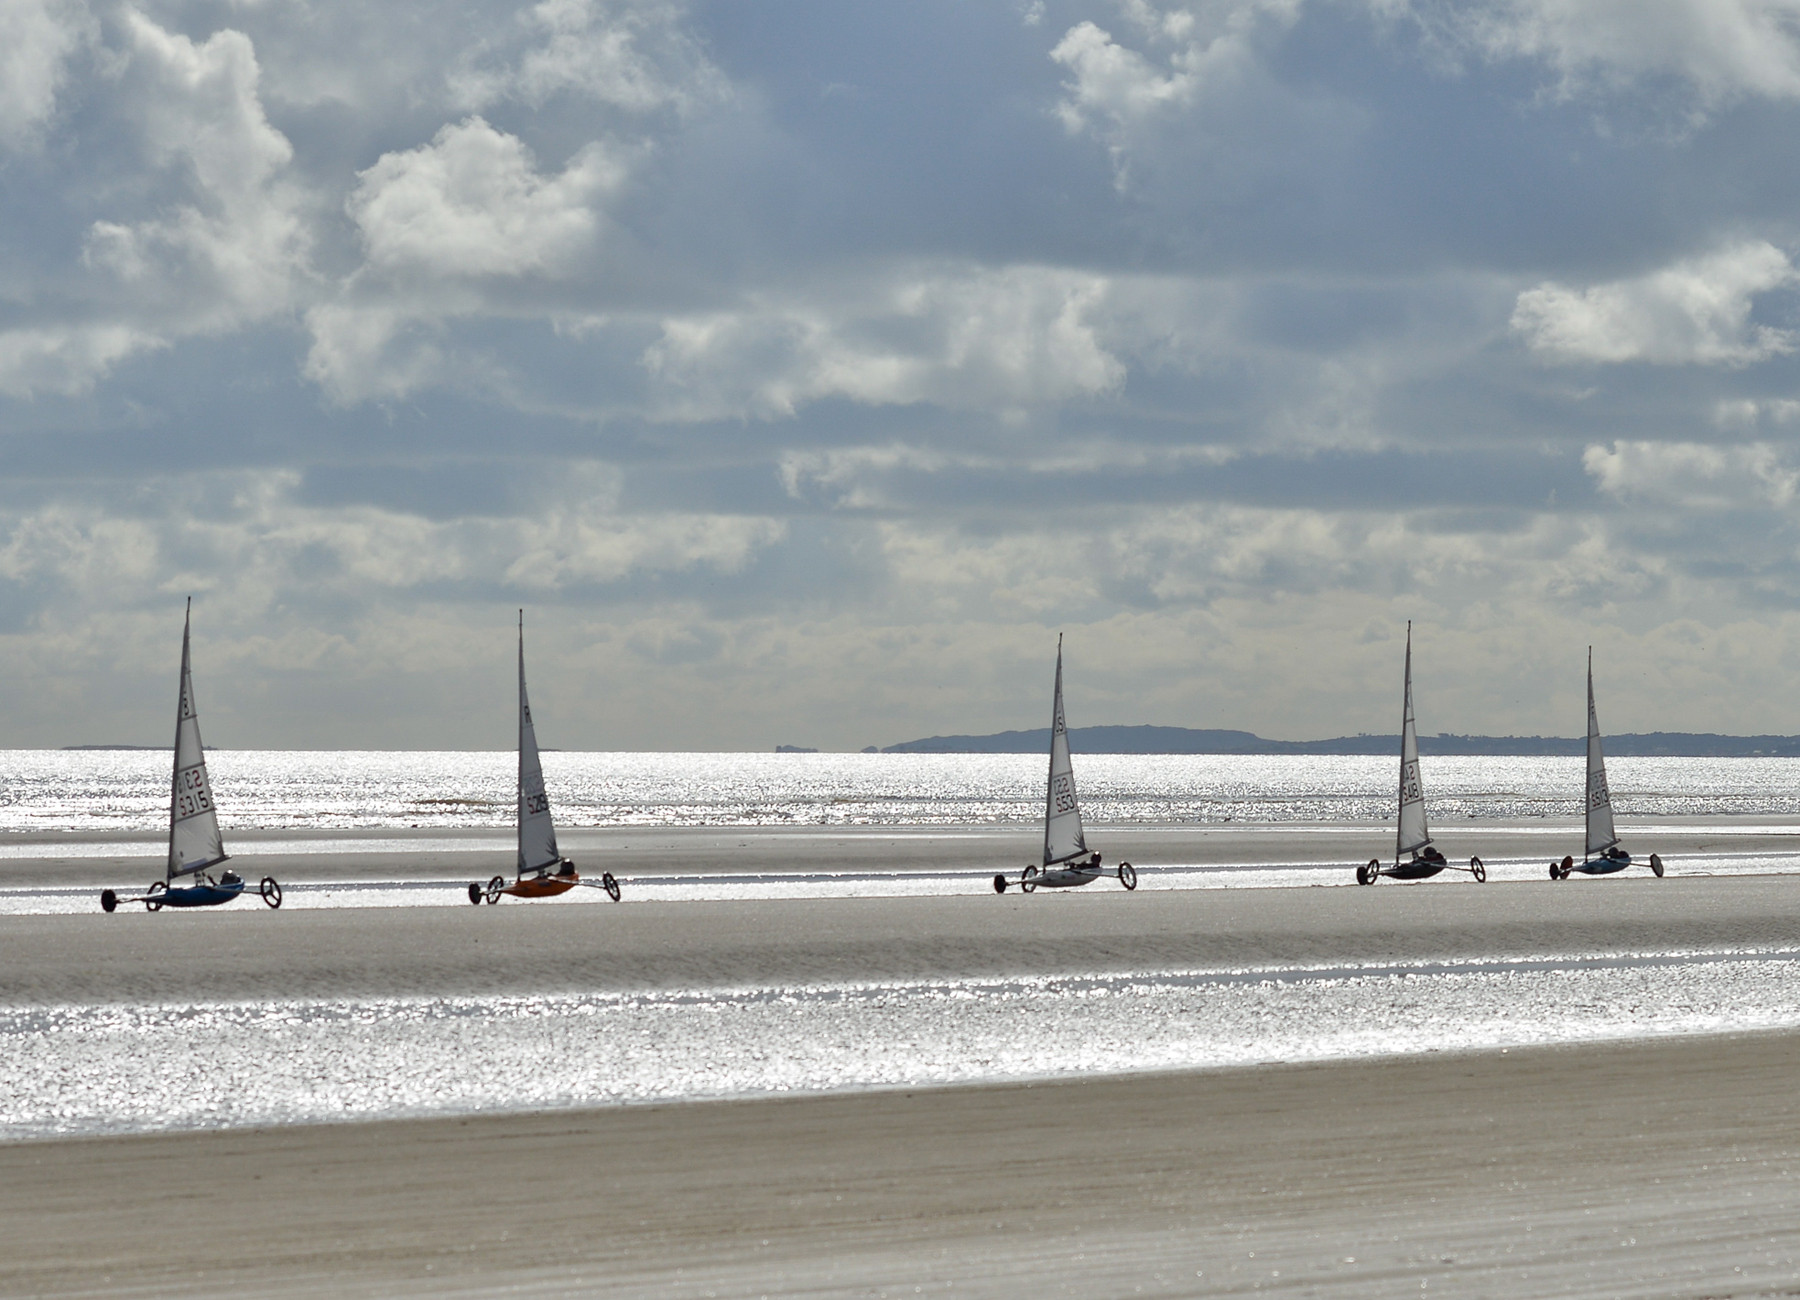 The best available hotels & places to stay near Laytown, Ireland